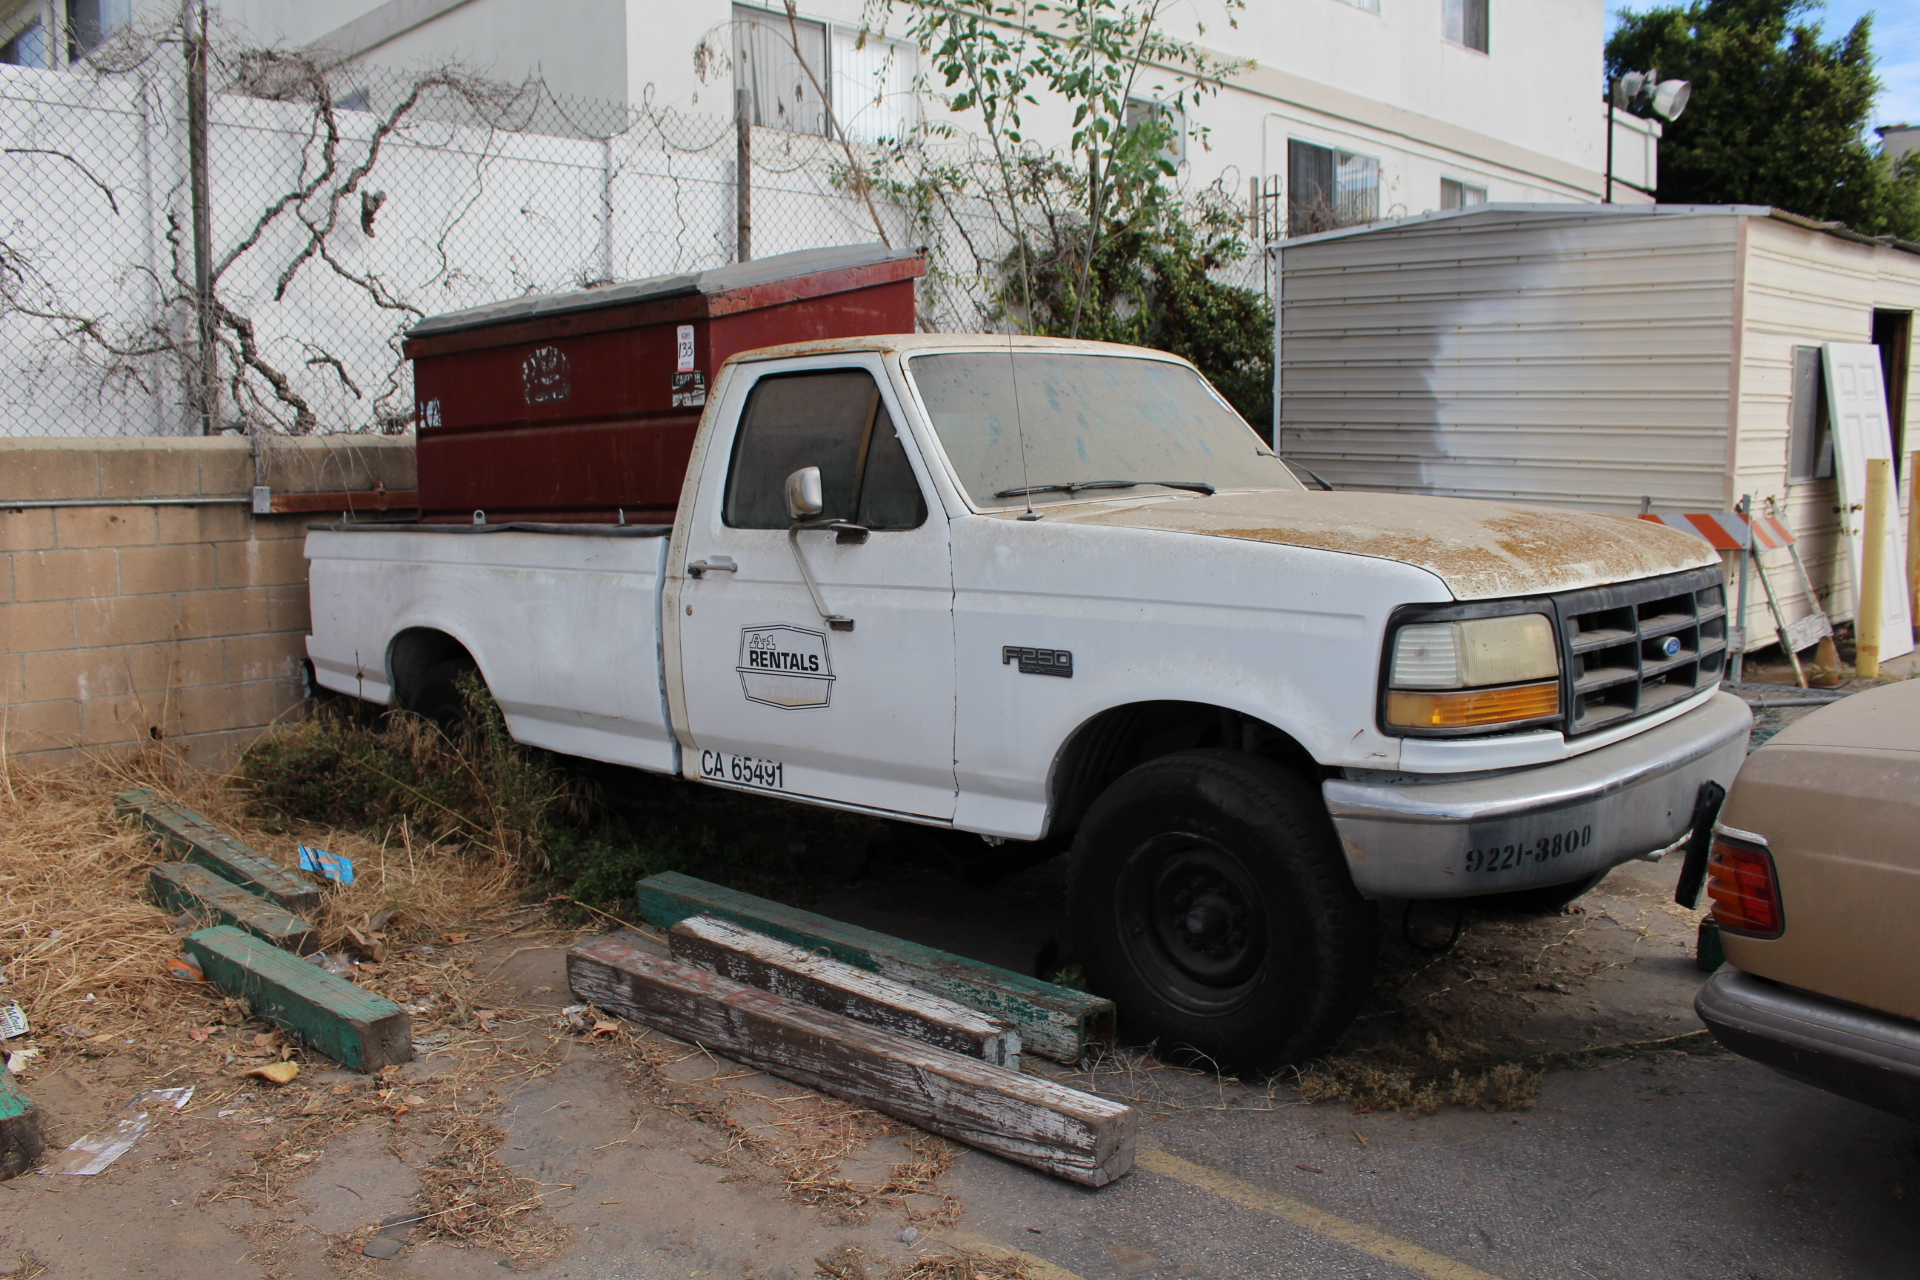 Lot 125 - 1992 FORD F250 CUSTOM, VIN 2FTHF25M4NCA27002, STANDARD CAB, 8' BED, DIESEL, LIC 4M00720, OUT OF